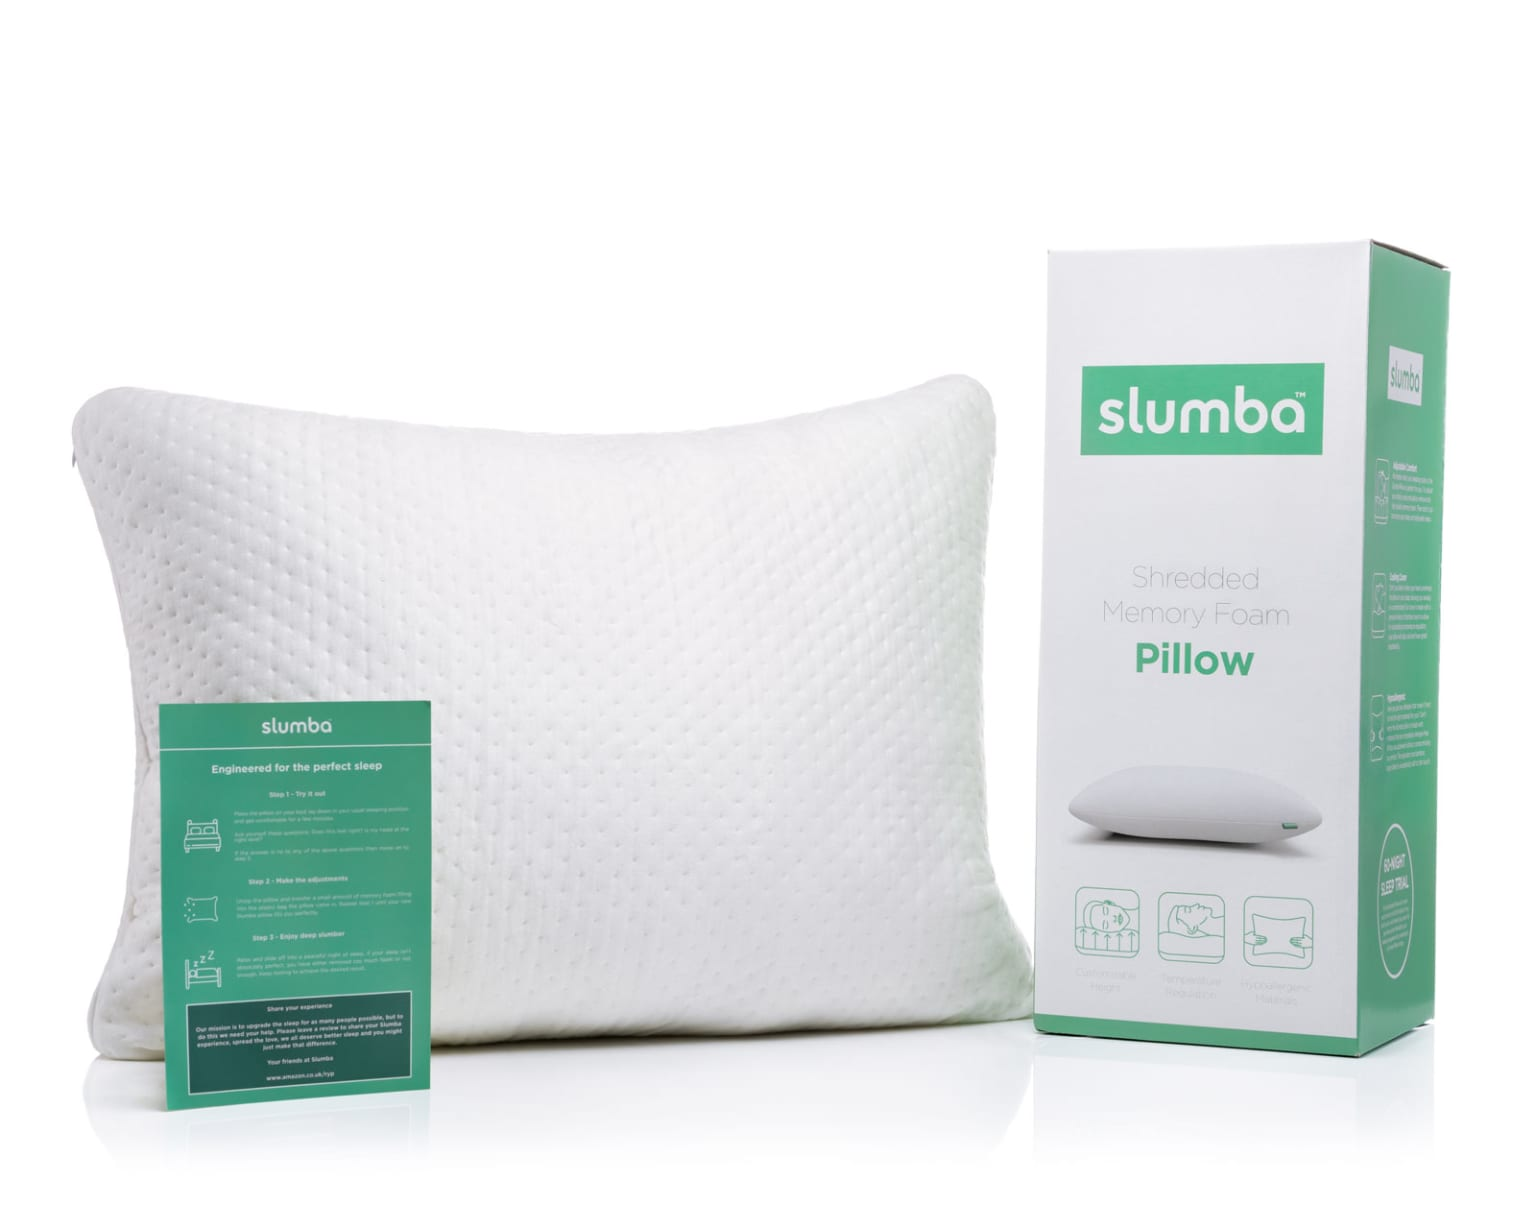 Slumba Pillow - commercial product photography